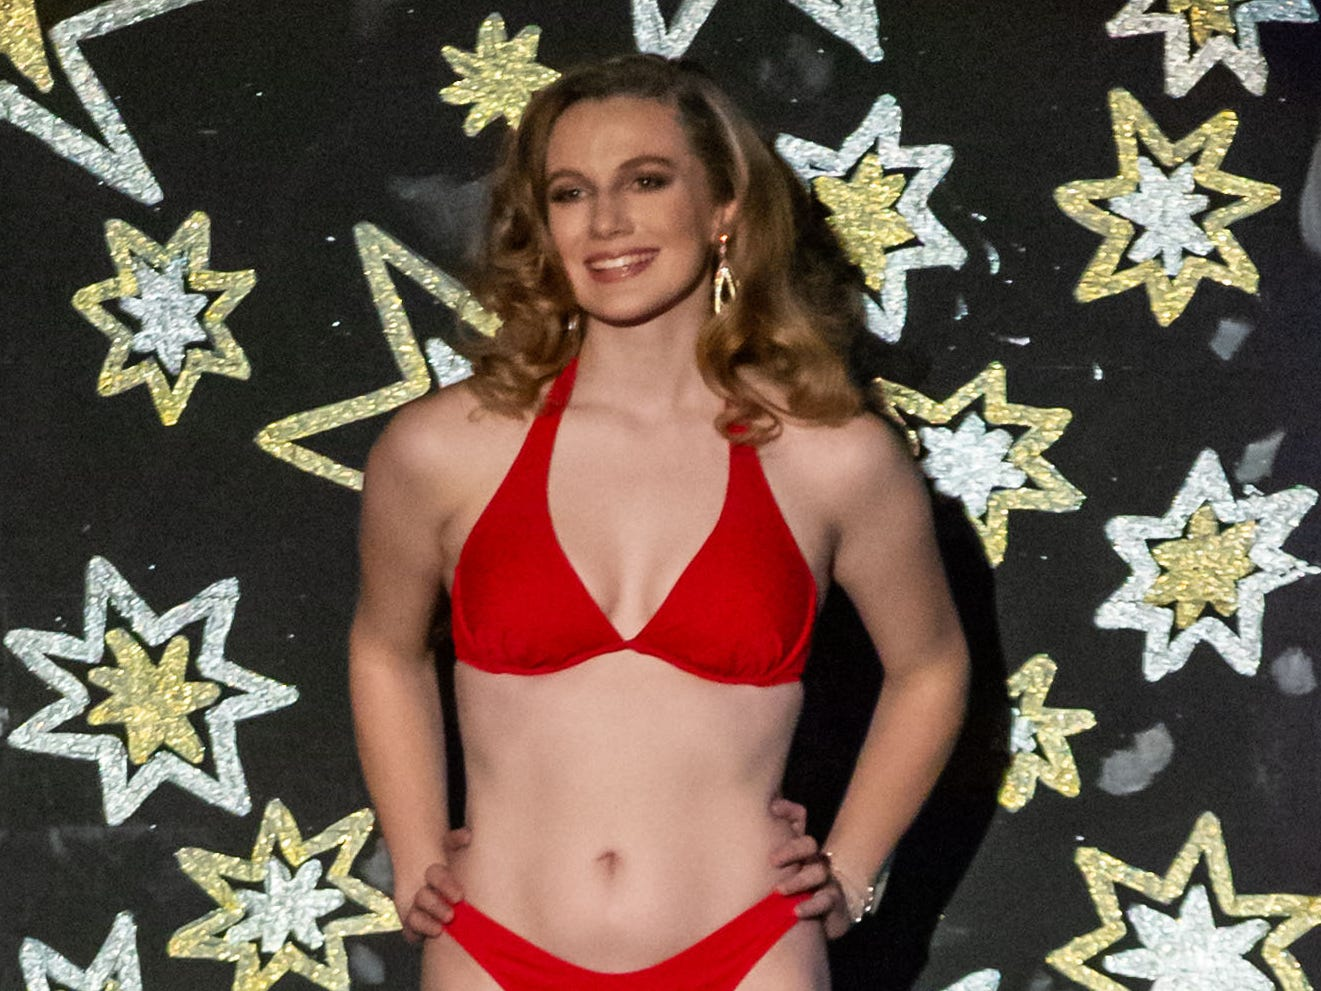 Katelyn Pomianek, sponsored by the St. Francis Lions Club, competes in the swimsuit segment of the 55th annual Miss St. Francis Scholarship Competition at St. Thomas More High School on Saturday, Feb. 2, 2019.